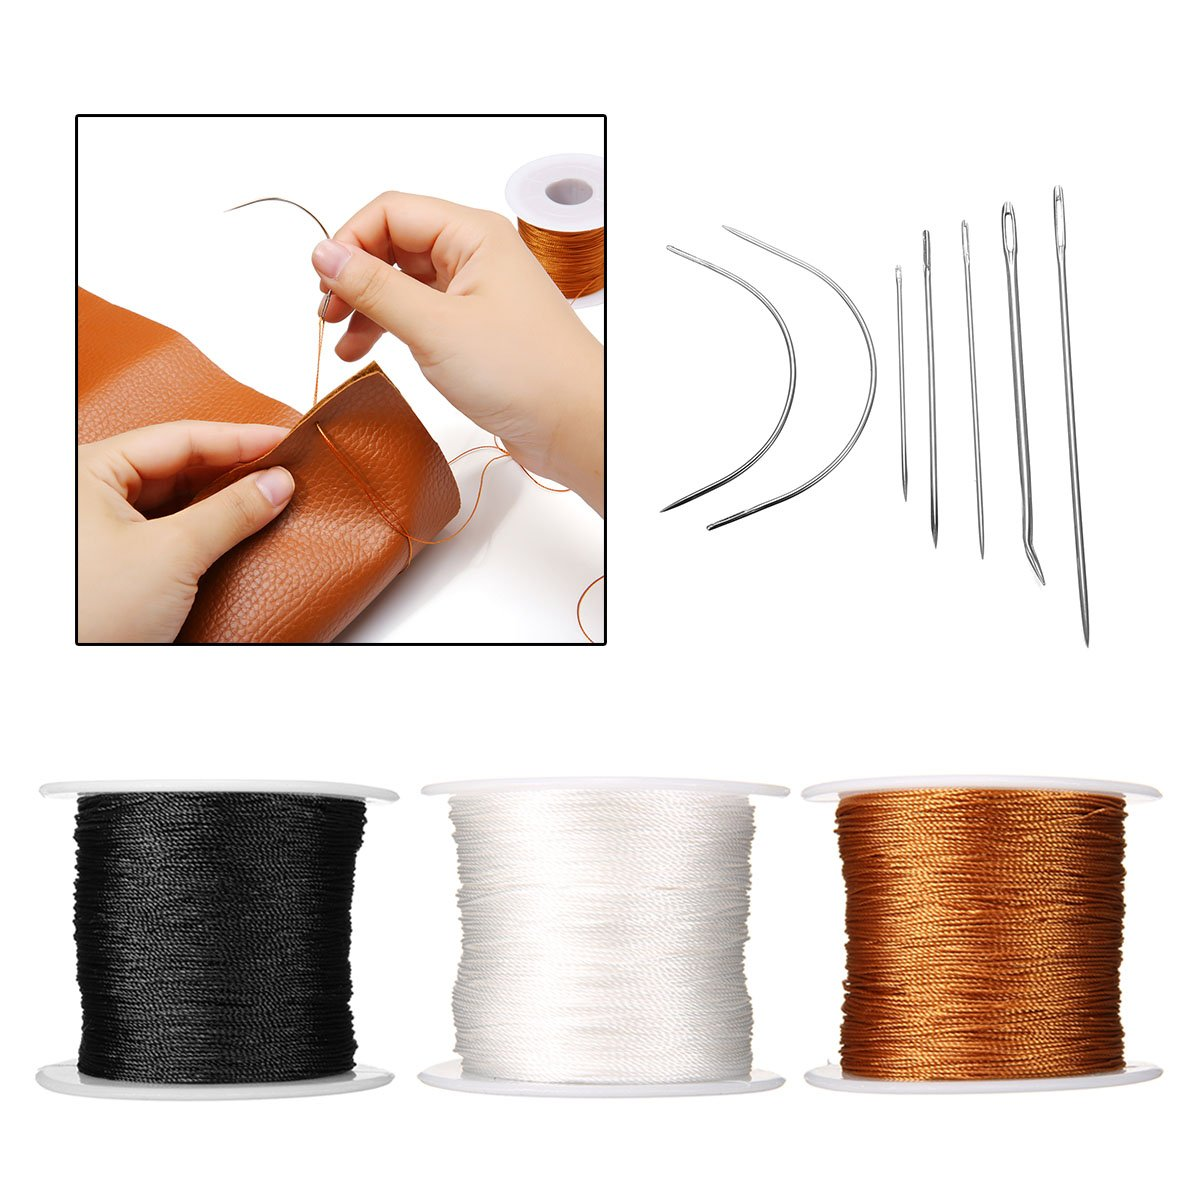 KING DO WAY 3PCS 150yard Upholstery Repair Thread Kit Sewing Needles Carpet Leather Canvas Repair 1 Naturel Spool+1 Black Spool+1 Leather color Spool with a Set of Heavy Duty Assorted Hand Needles